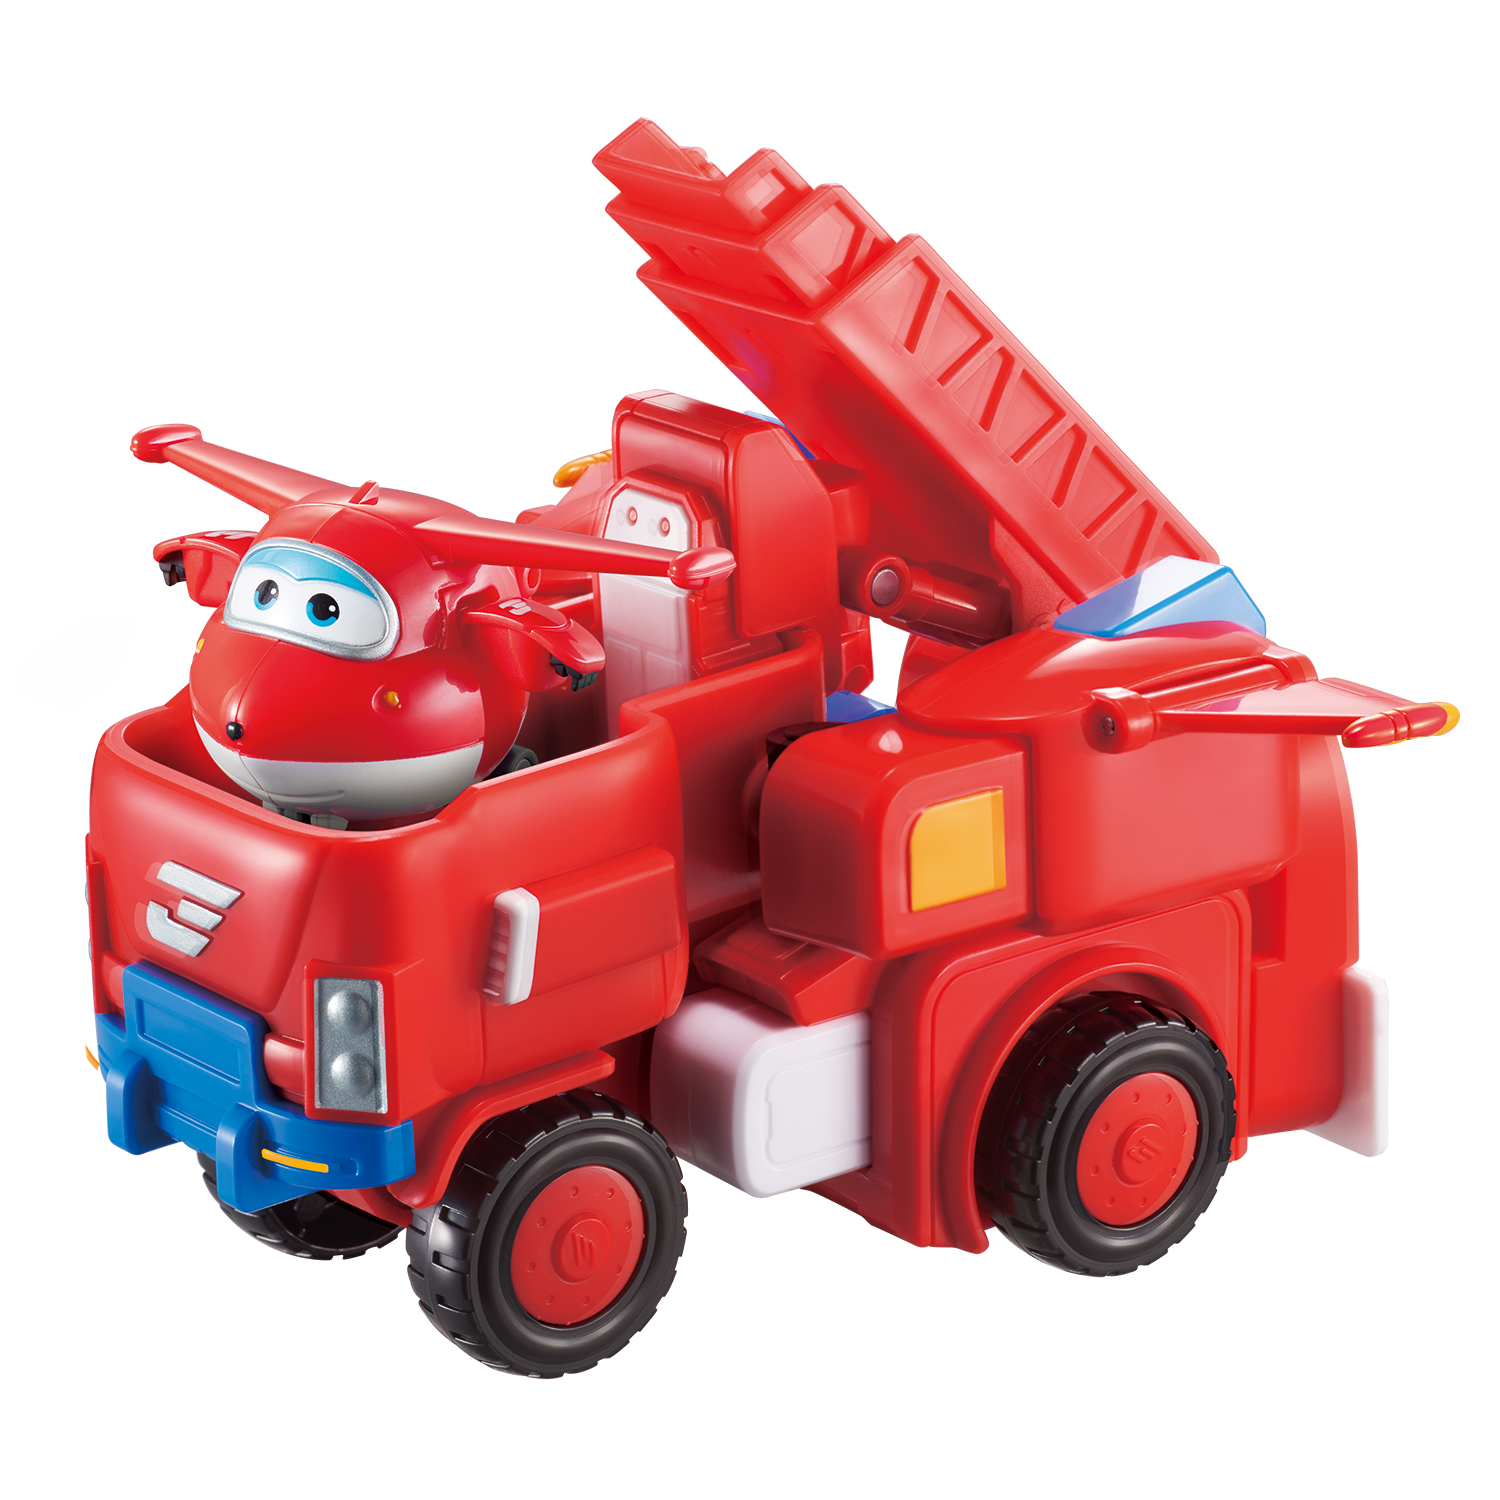 Купить Авто-трансформер Super Wings Джетта, Super Wings - Супер Крылья